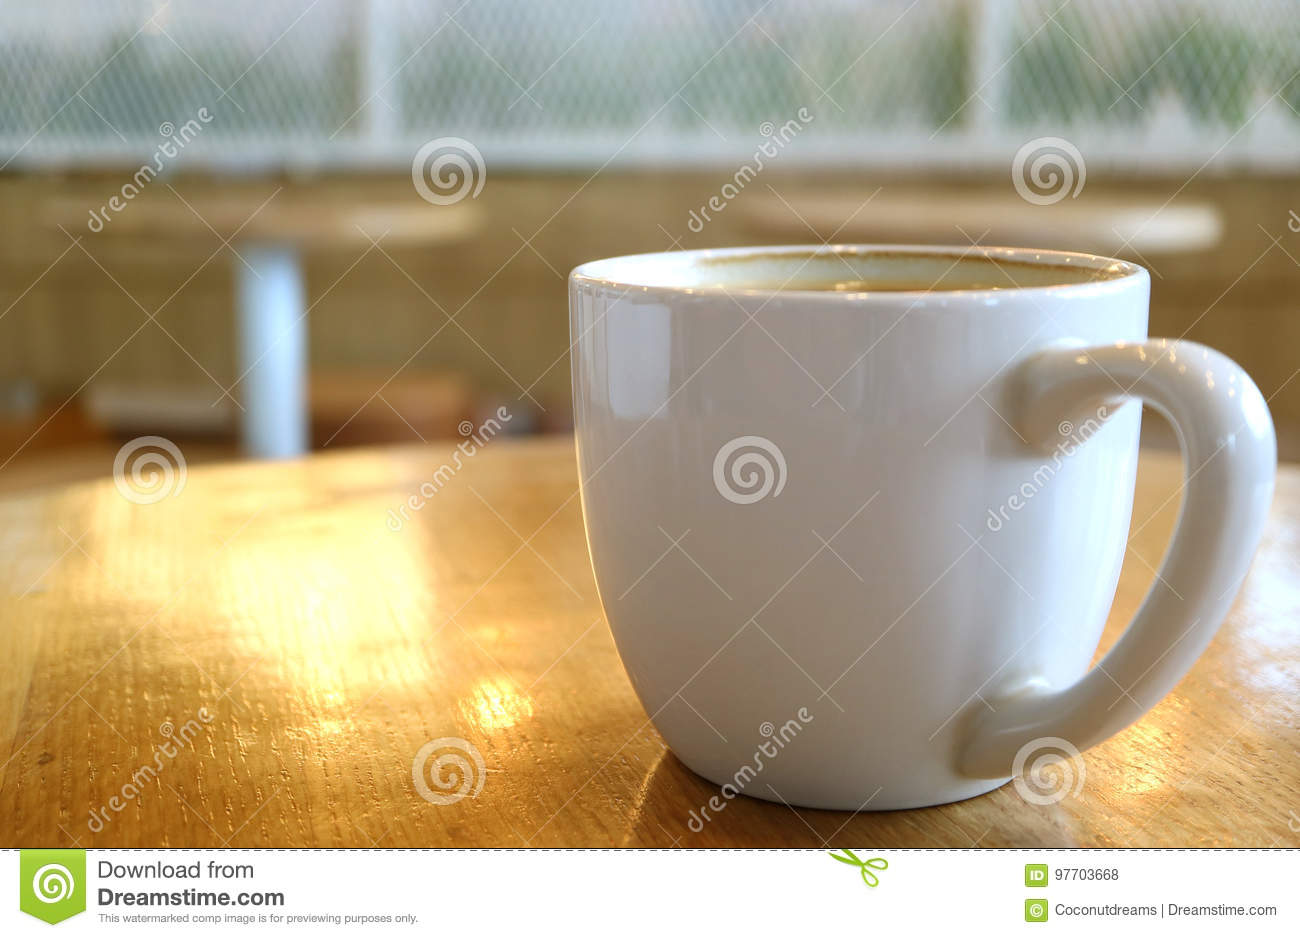 Cup of Hot Coffee on a Wooden Table with Sunlight Reflections